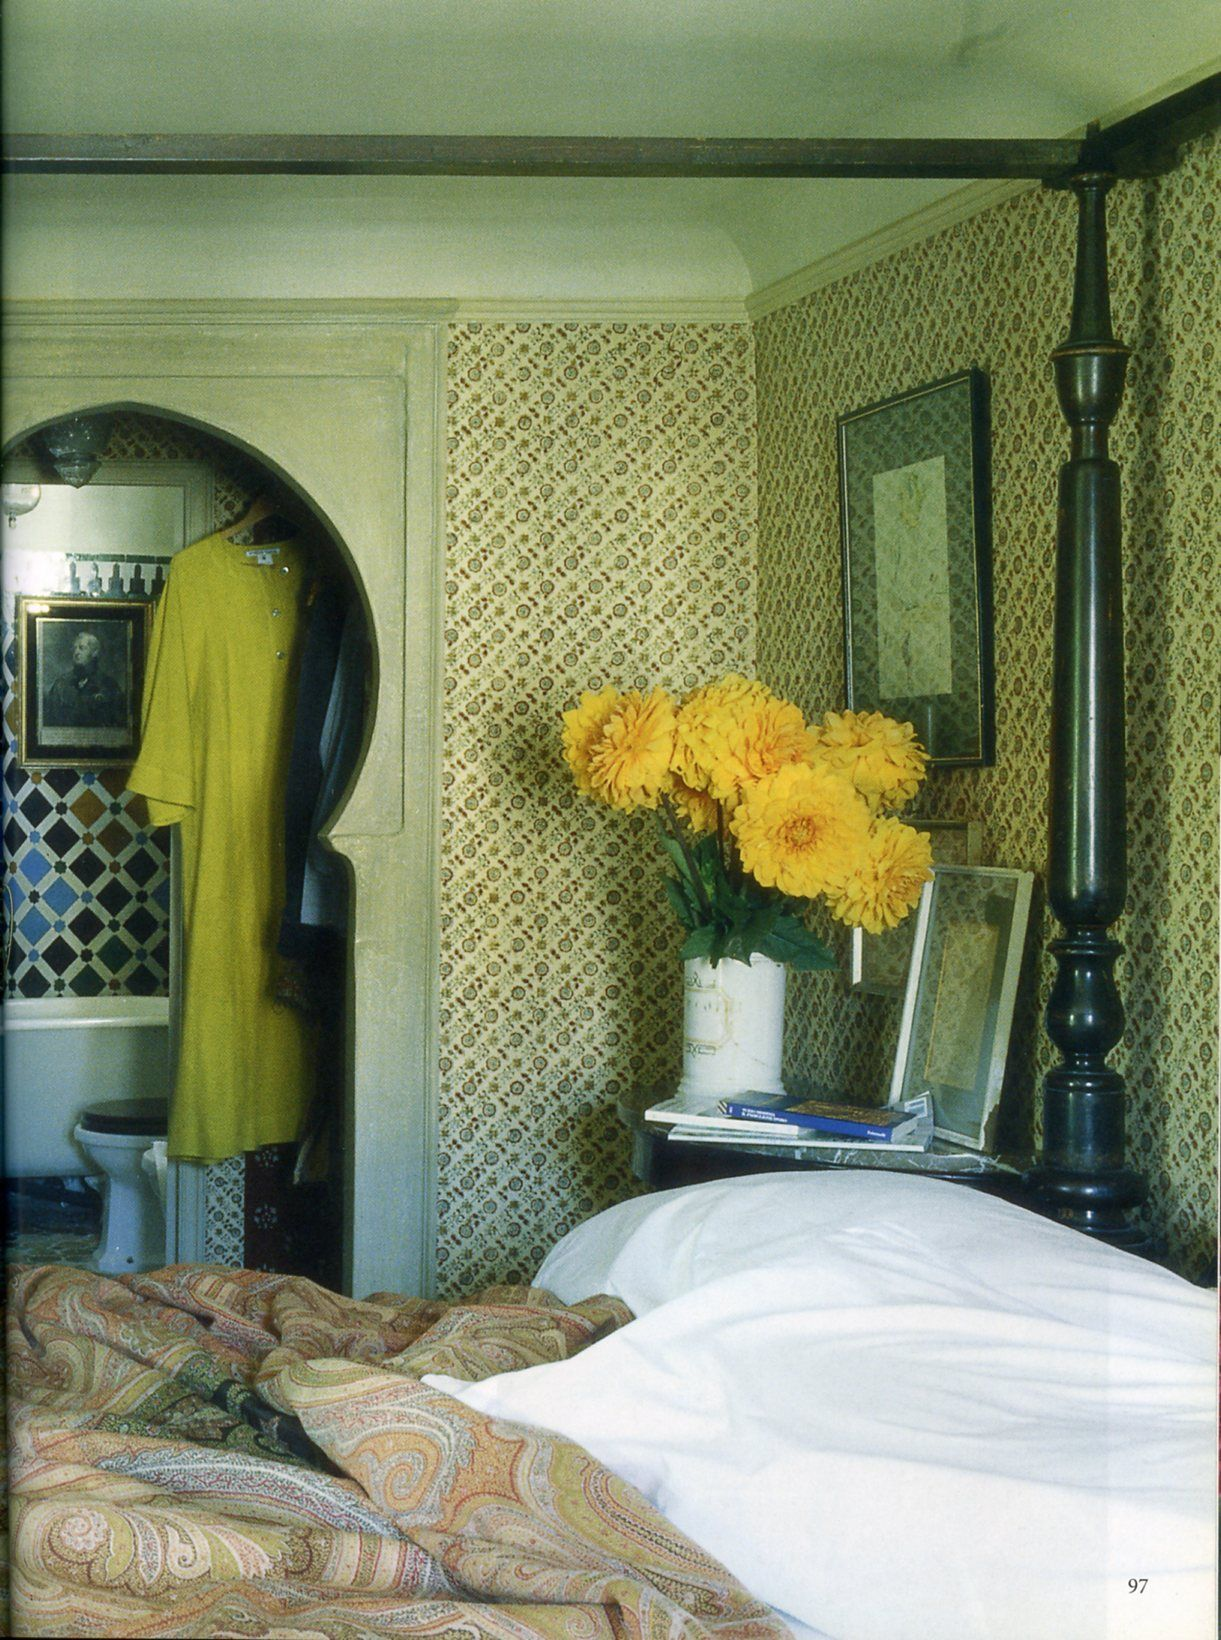 The World Of Interiors, November 2009 Photo  Roland Beaufre